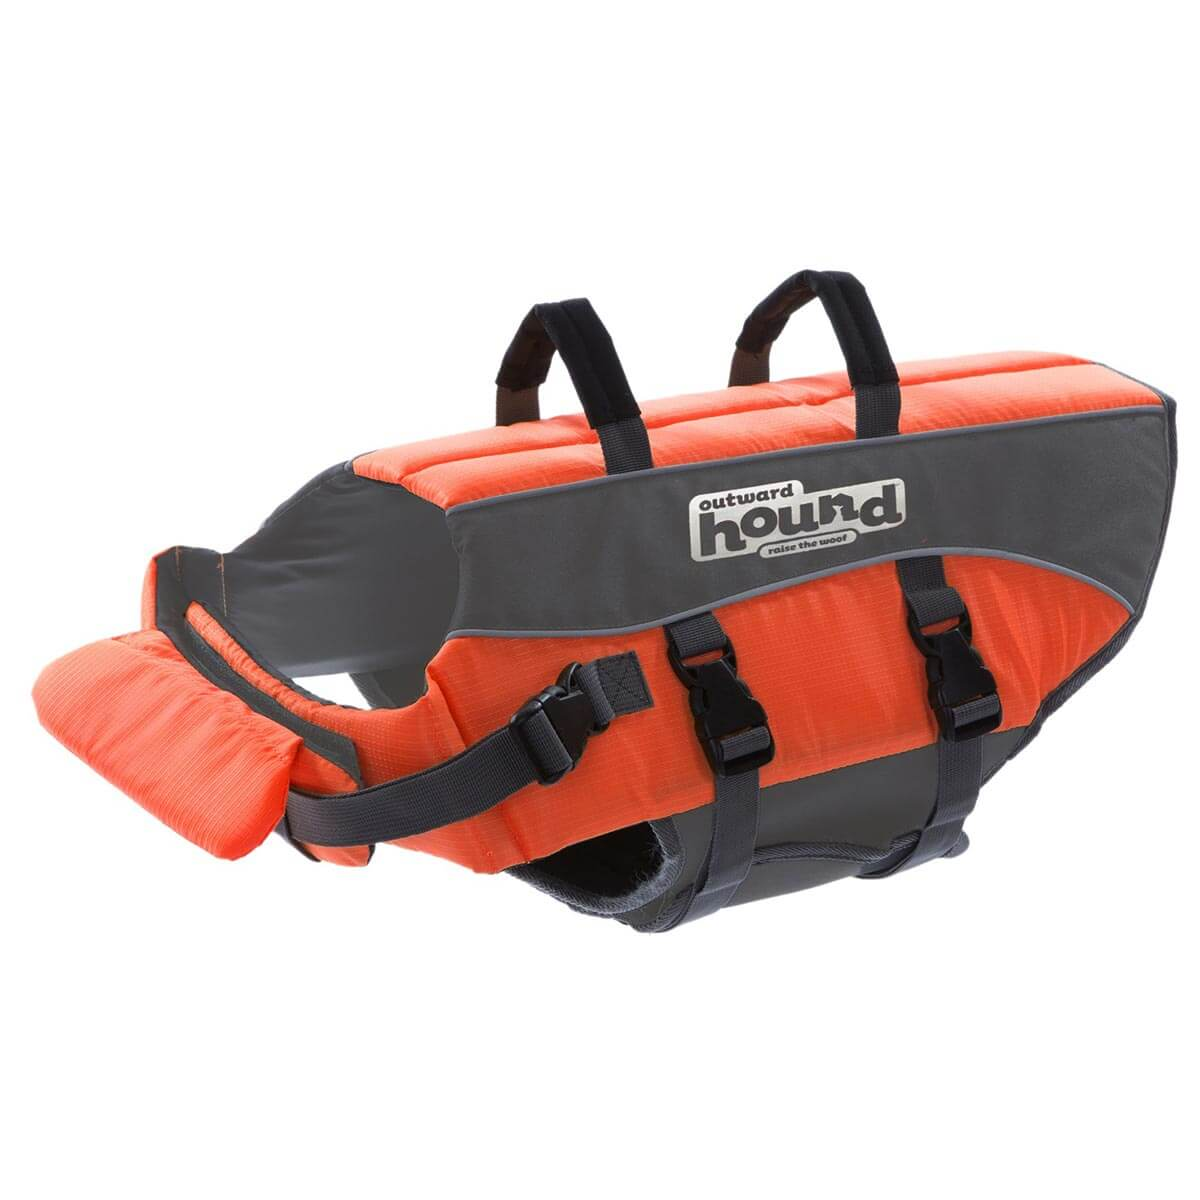 Outward Hound Dog Life Jacket Extra Large Orange 15